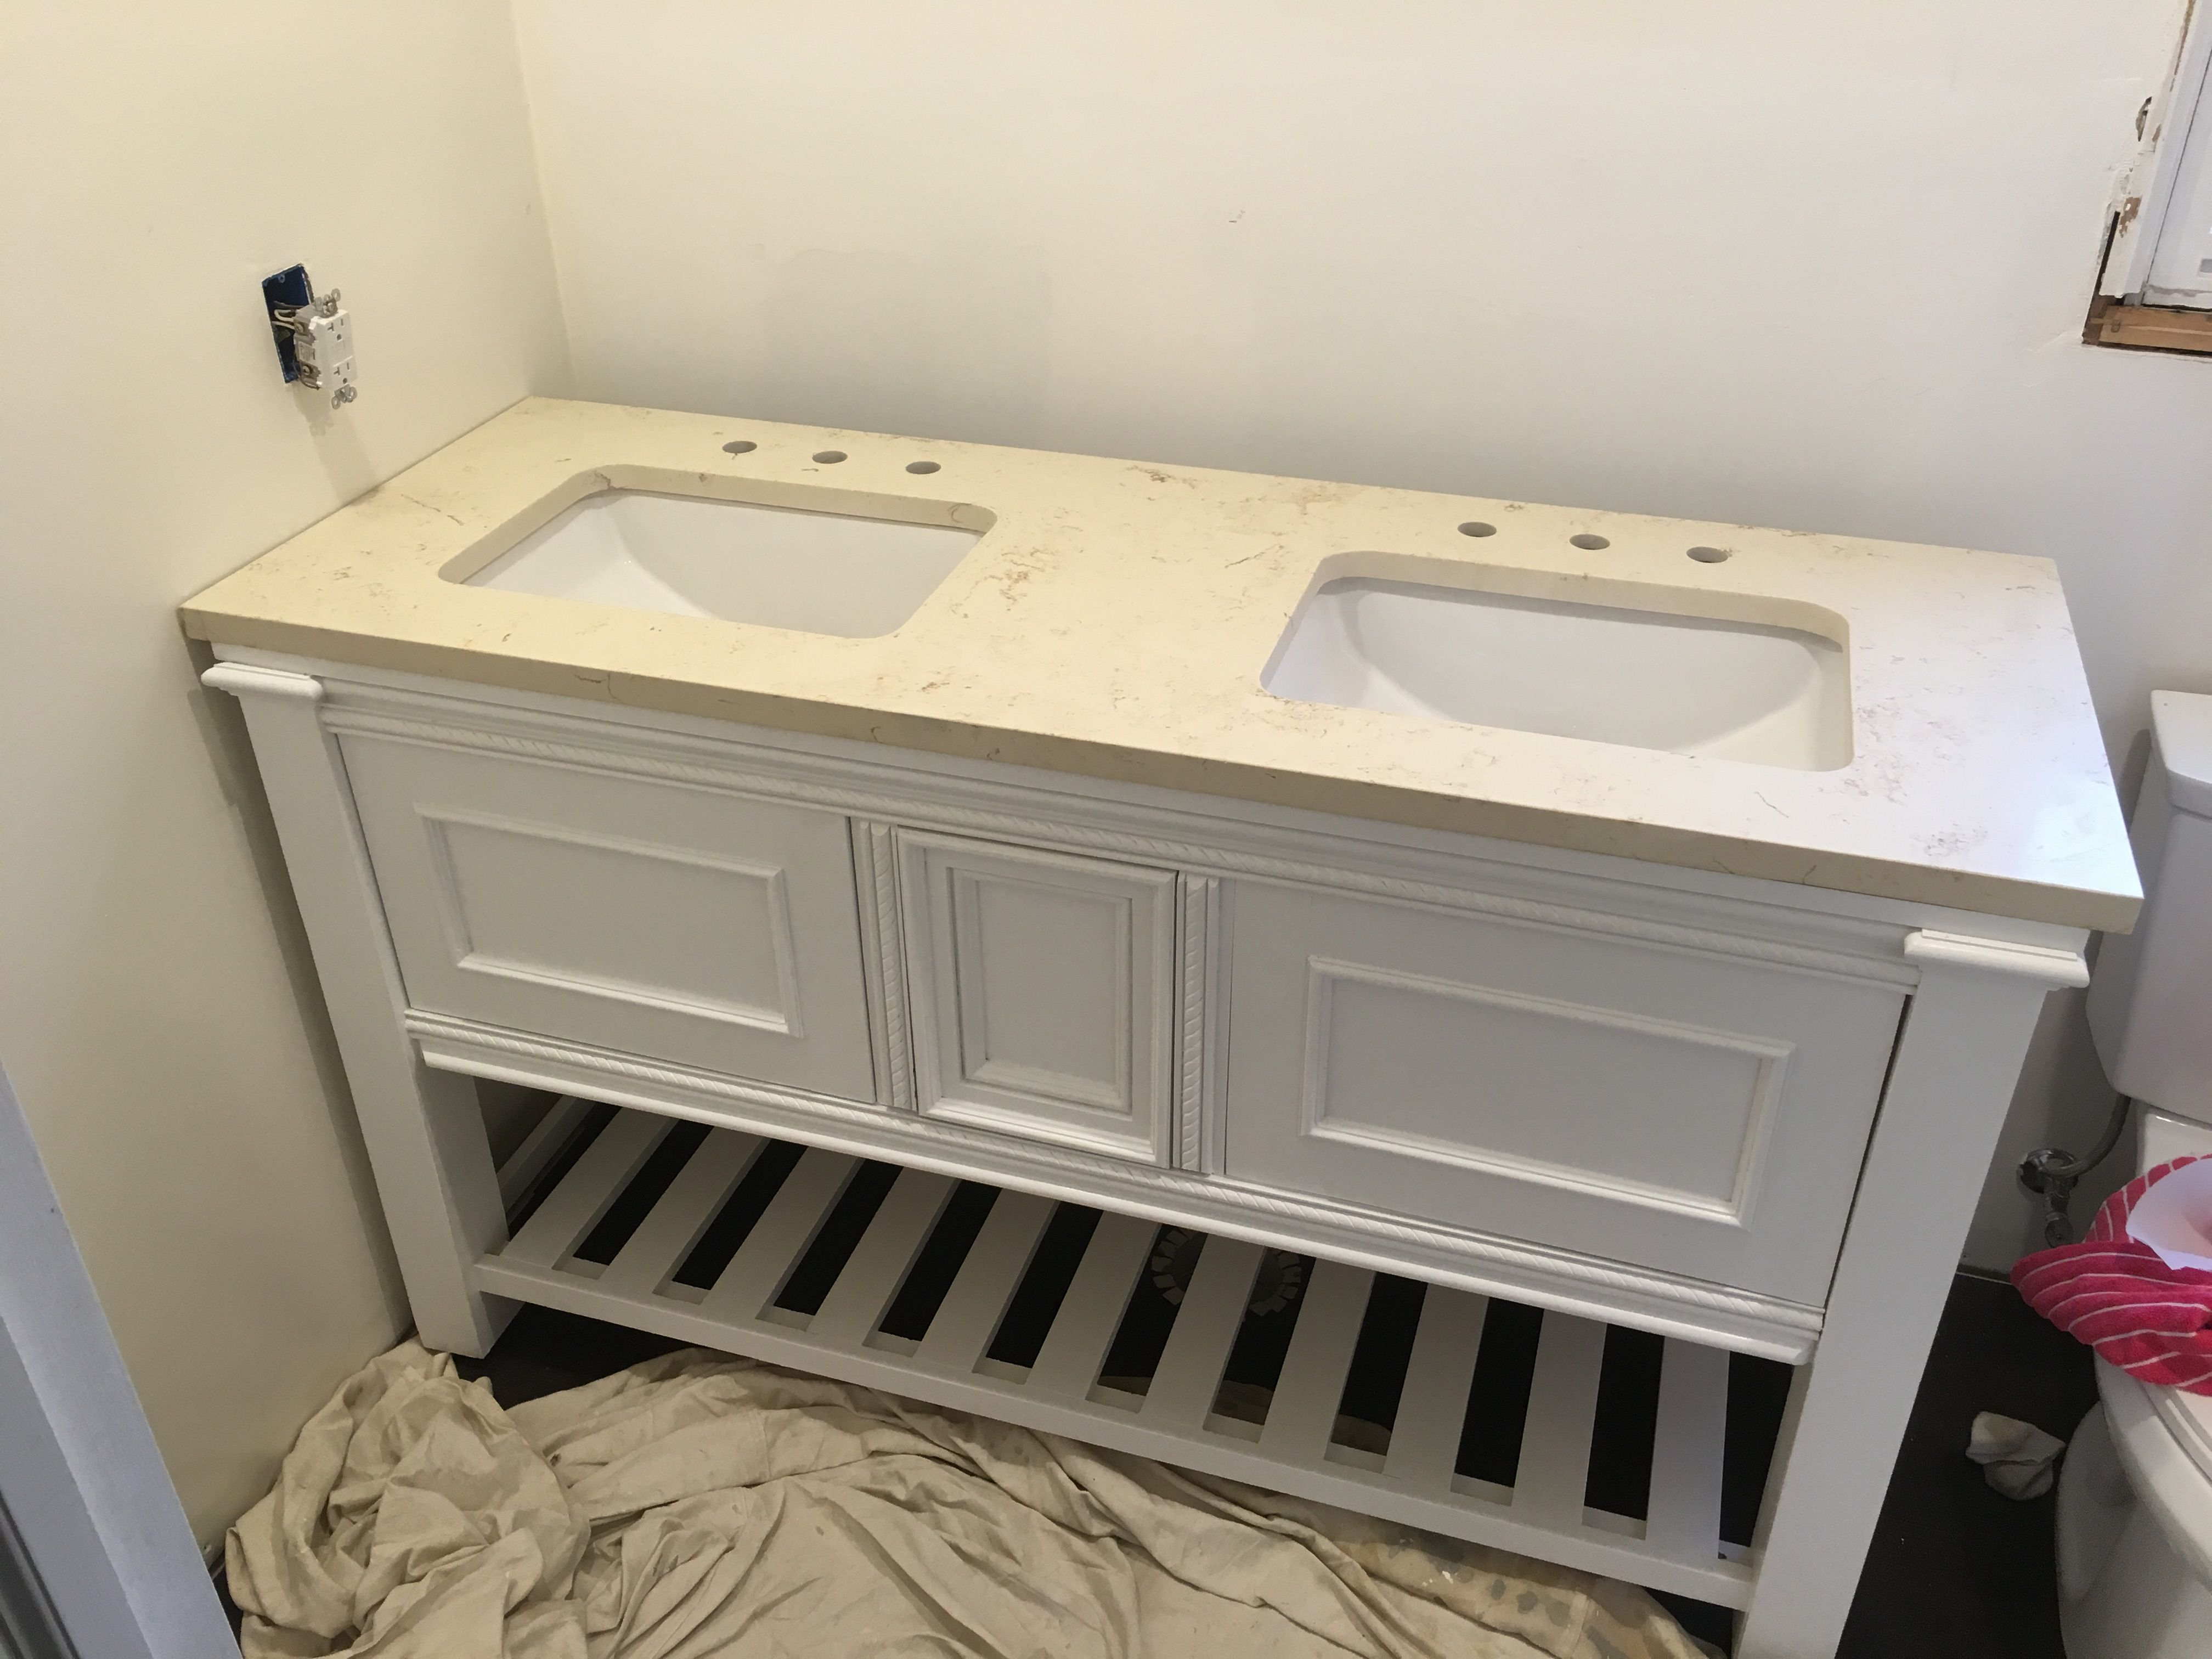 Double Vanity Do It Yourself Home Projects From Ana